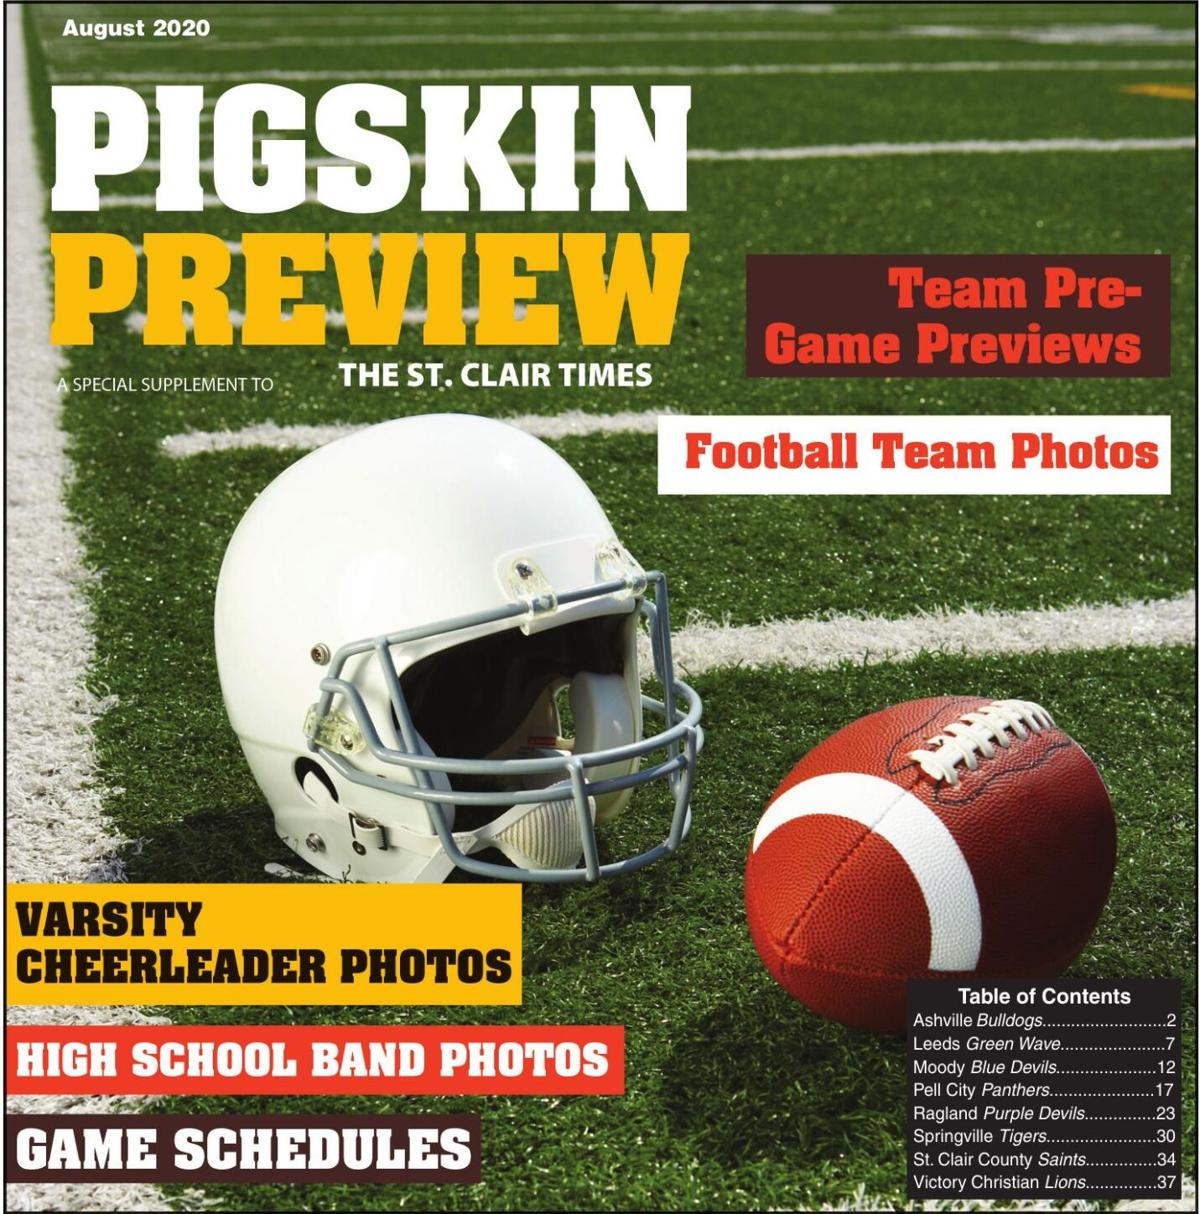 2020 Pigskin Preview